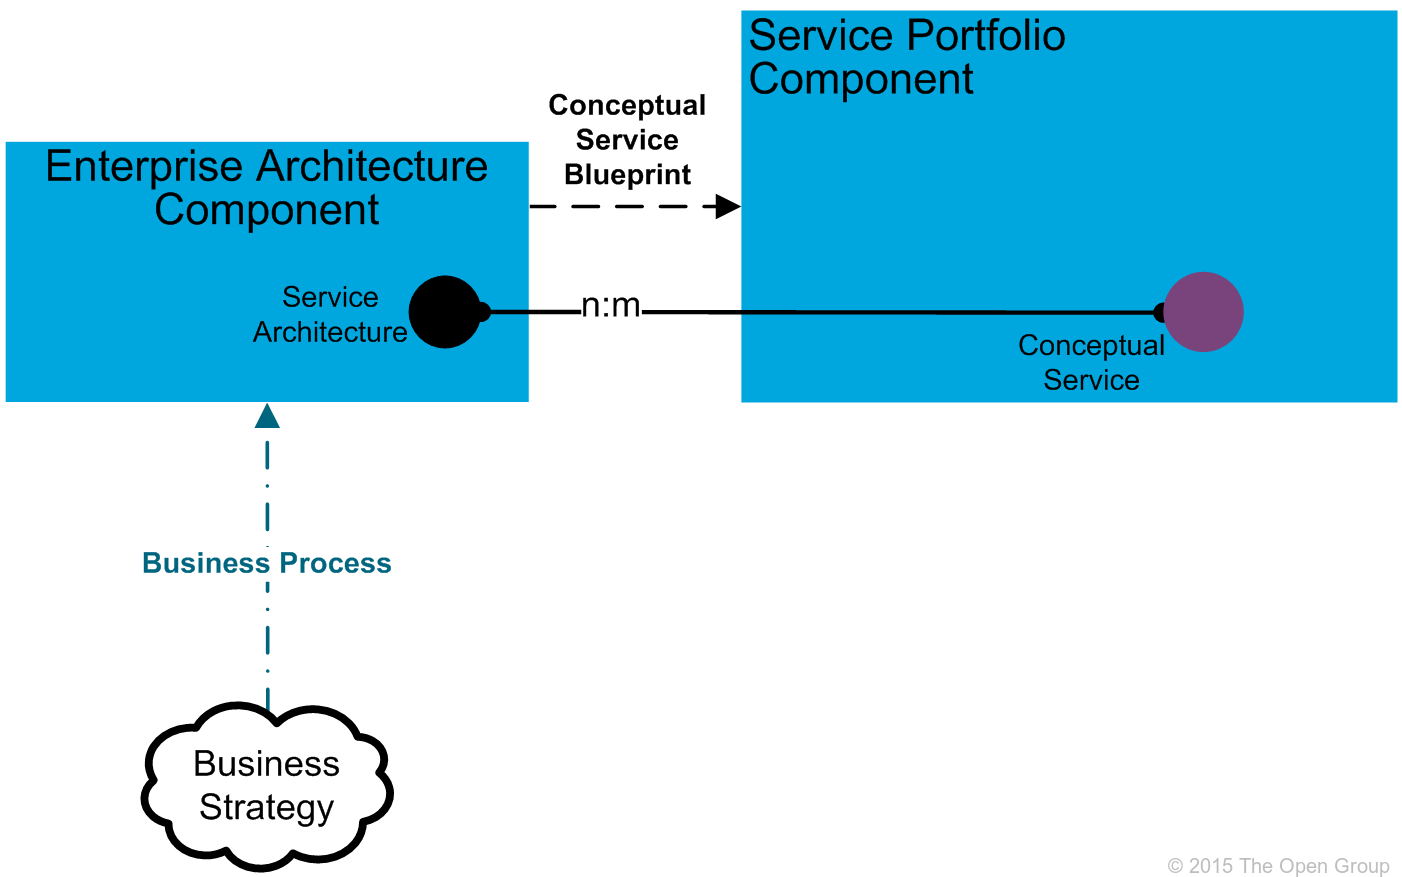 It4it reference architecture version 20 chapter 5 figure 39 enterprise architecture functional component level 2 model malvernweather Gallery